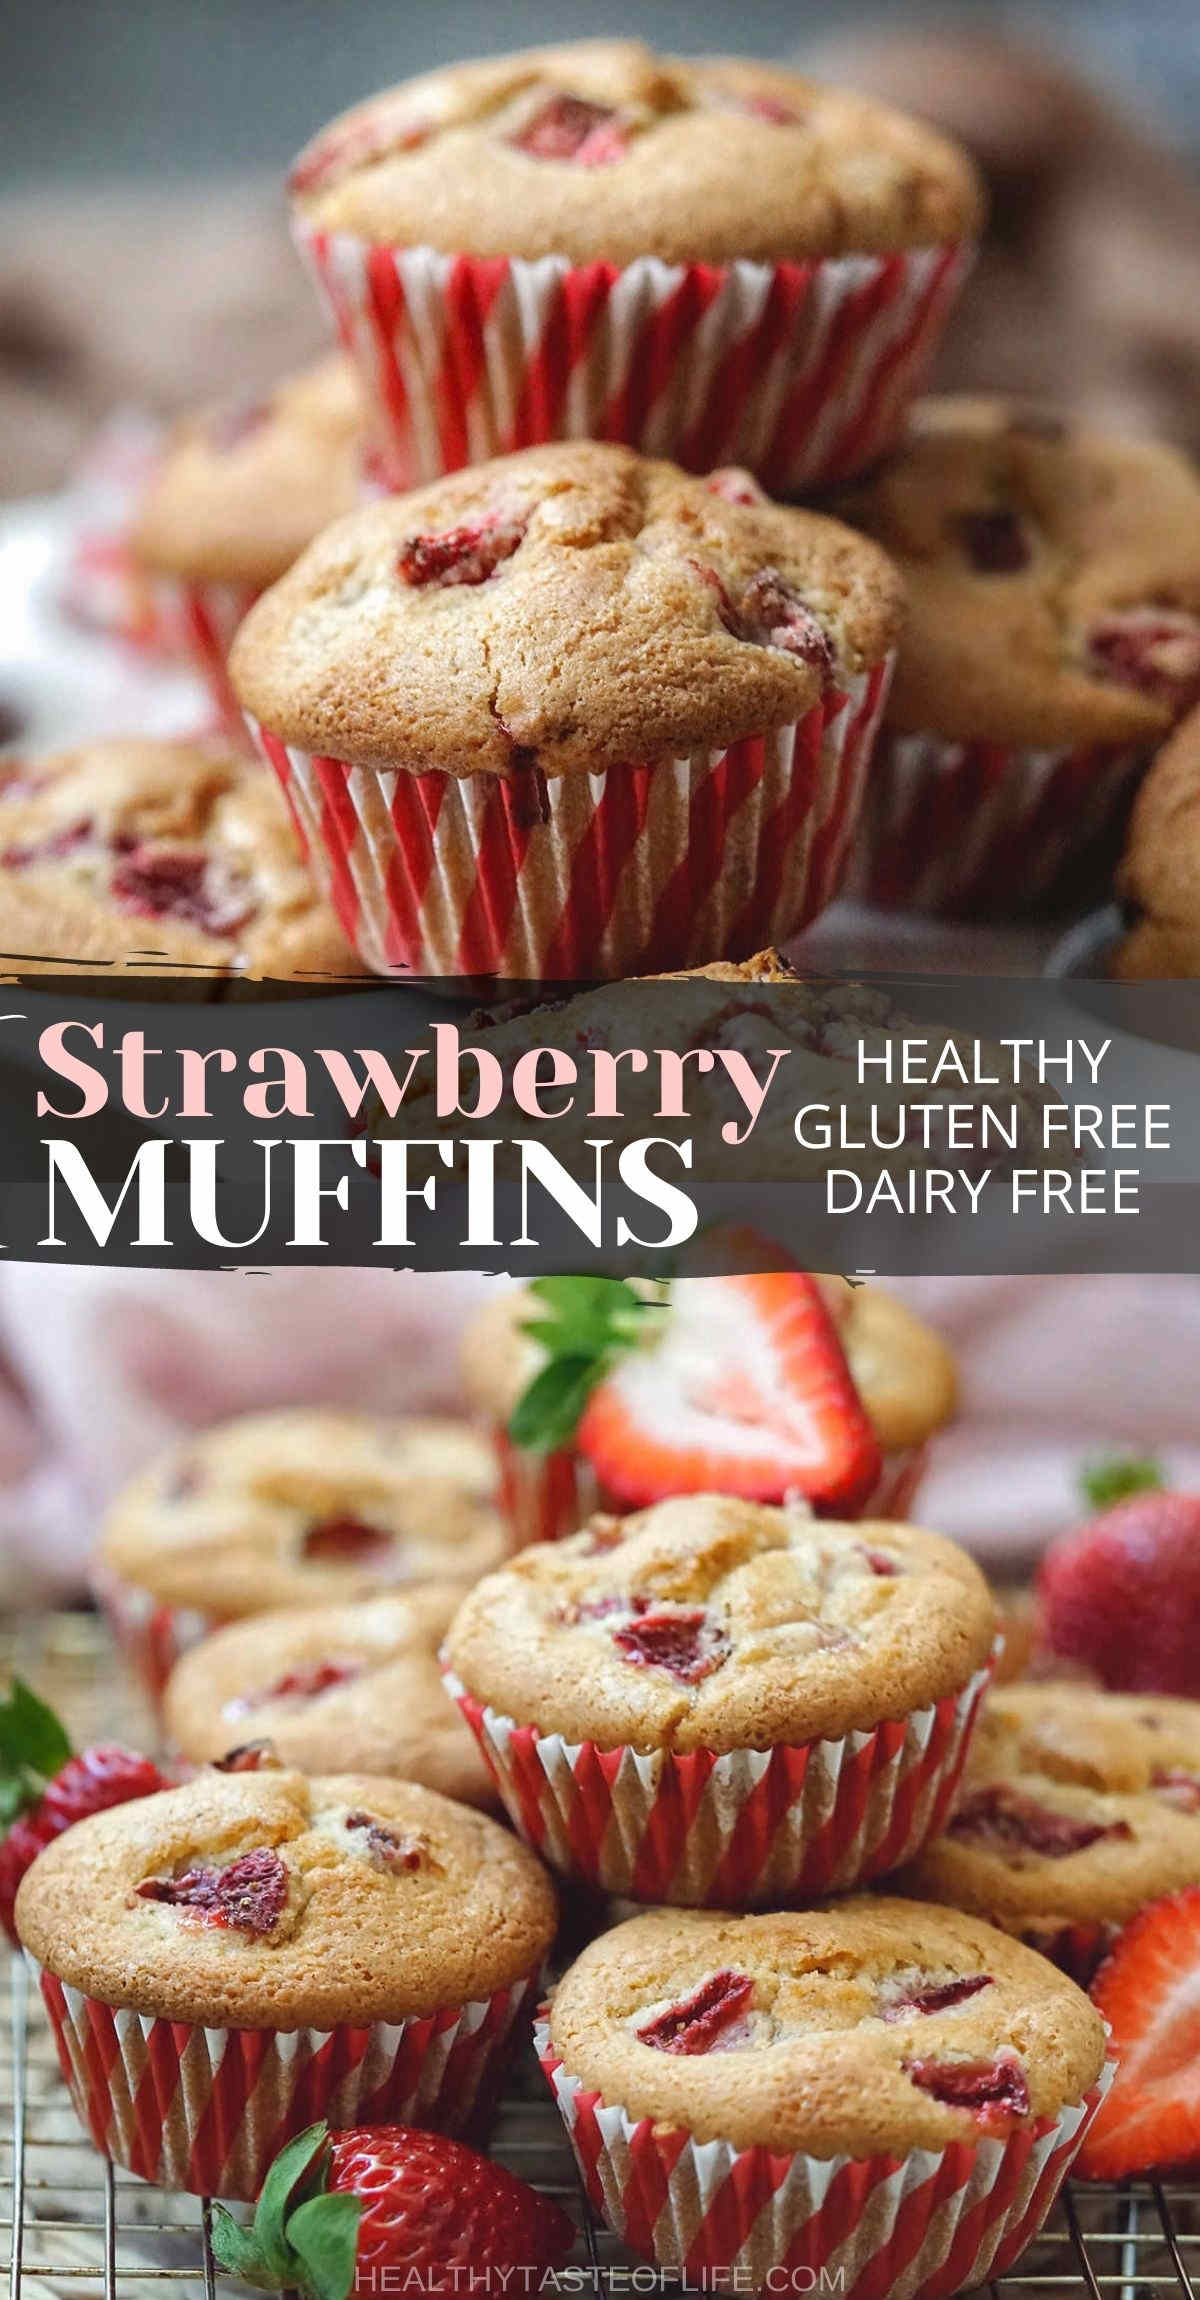 Strawberry Muffins Recipe Healthy Easy Gluten Free And Dairy Free.